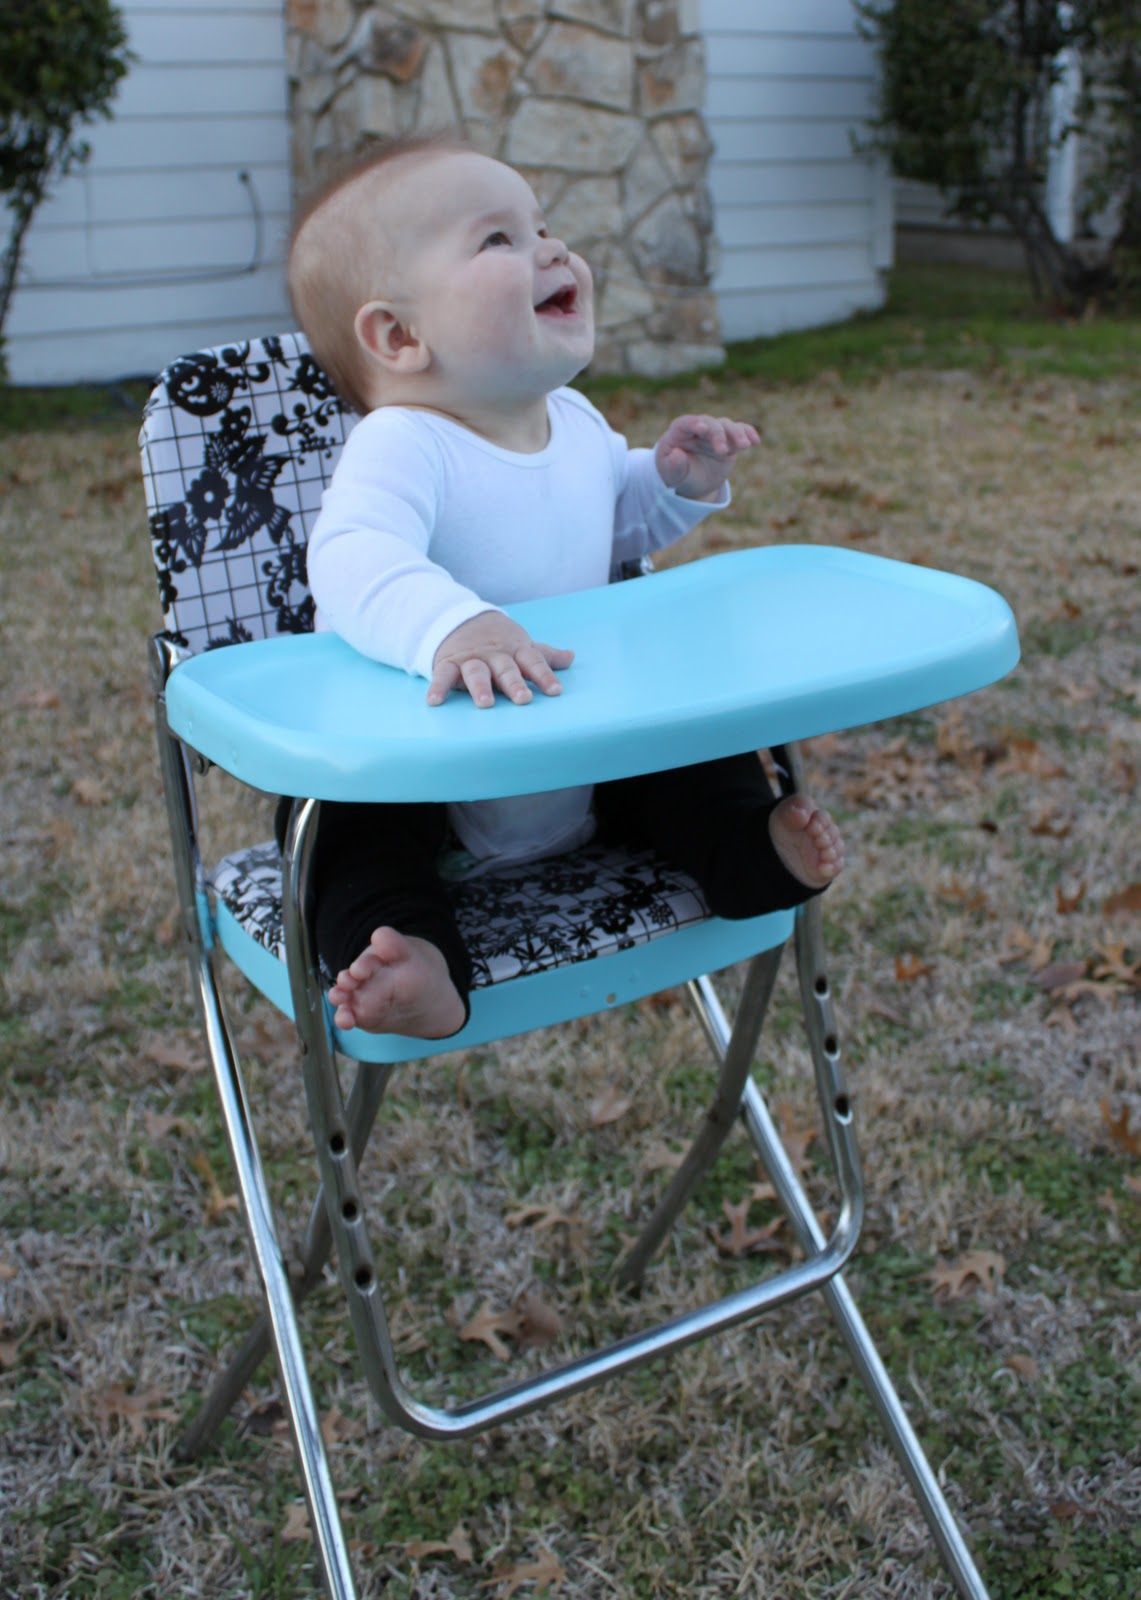 Retro High Chairs Babies White Chair Covers With Black Sash A Vintage Highchair Makeover Tutorial Bare Feet On The Dashboard I Love Using Pieces Because They Are Often So Much Higher Quality Than Plastic Crap From Target We And Have Our Share Of Baby